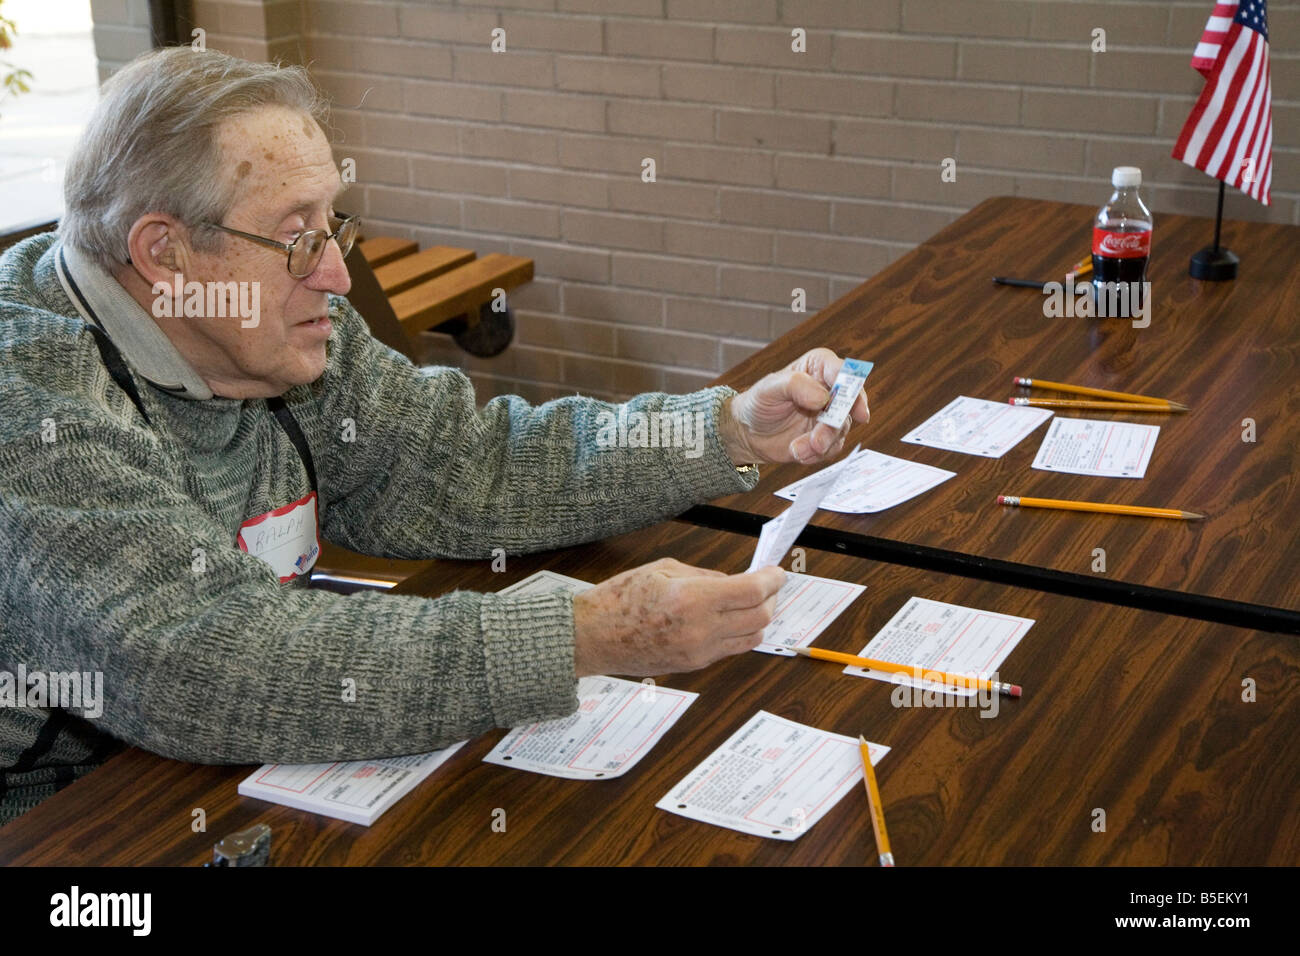 Election official checks voter's identification - Stock Image